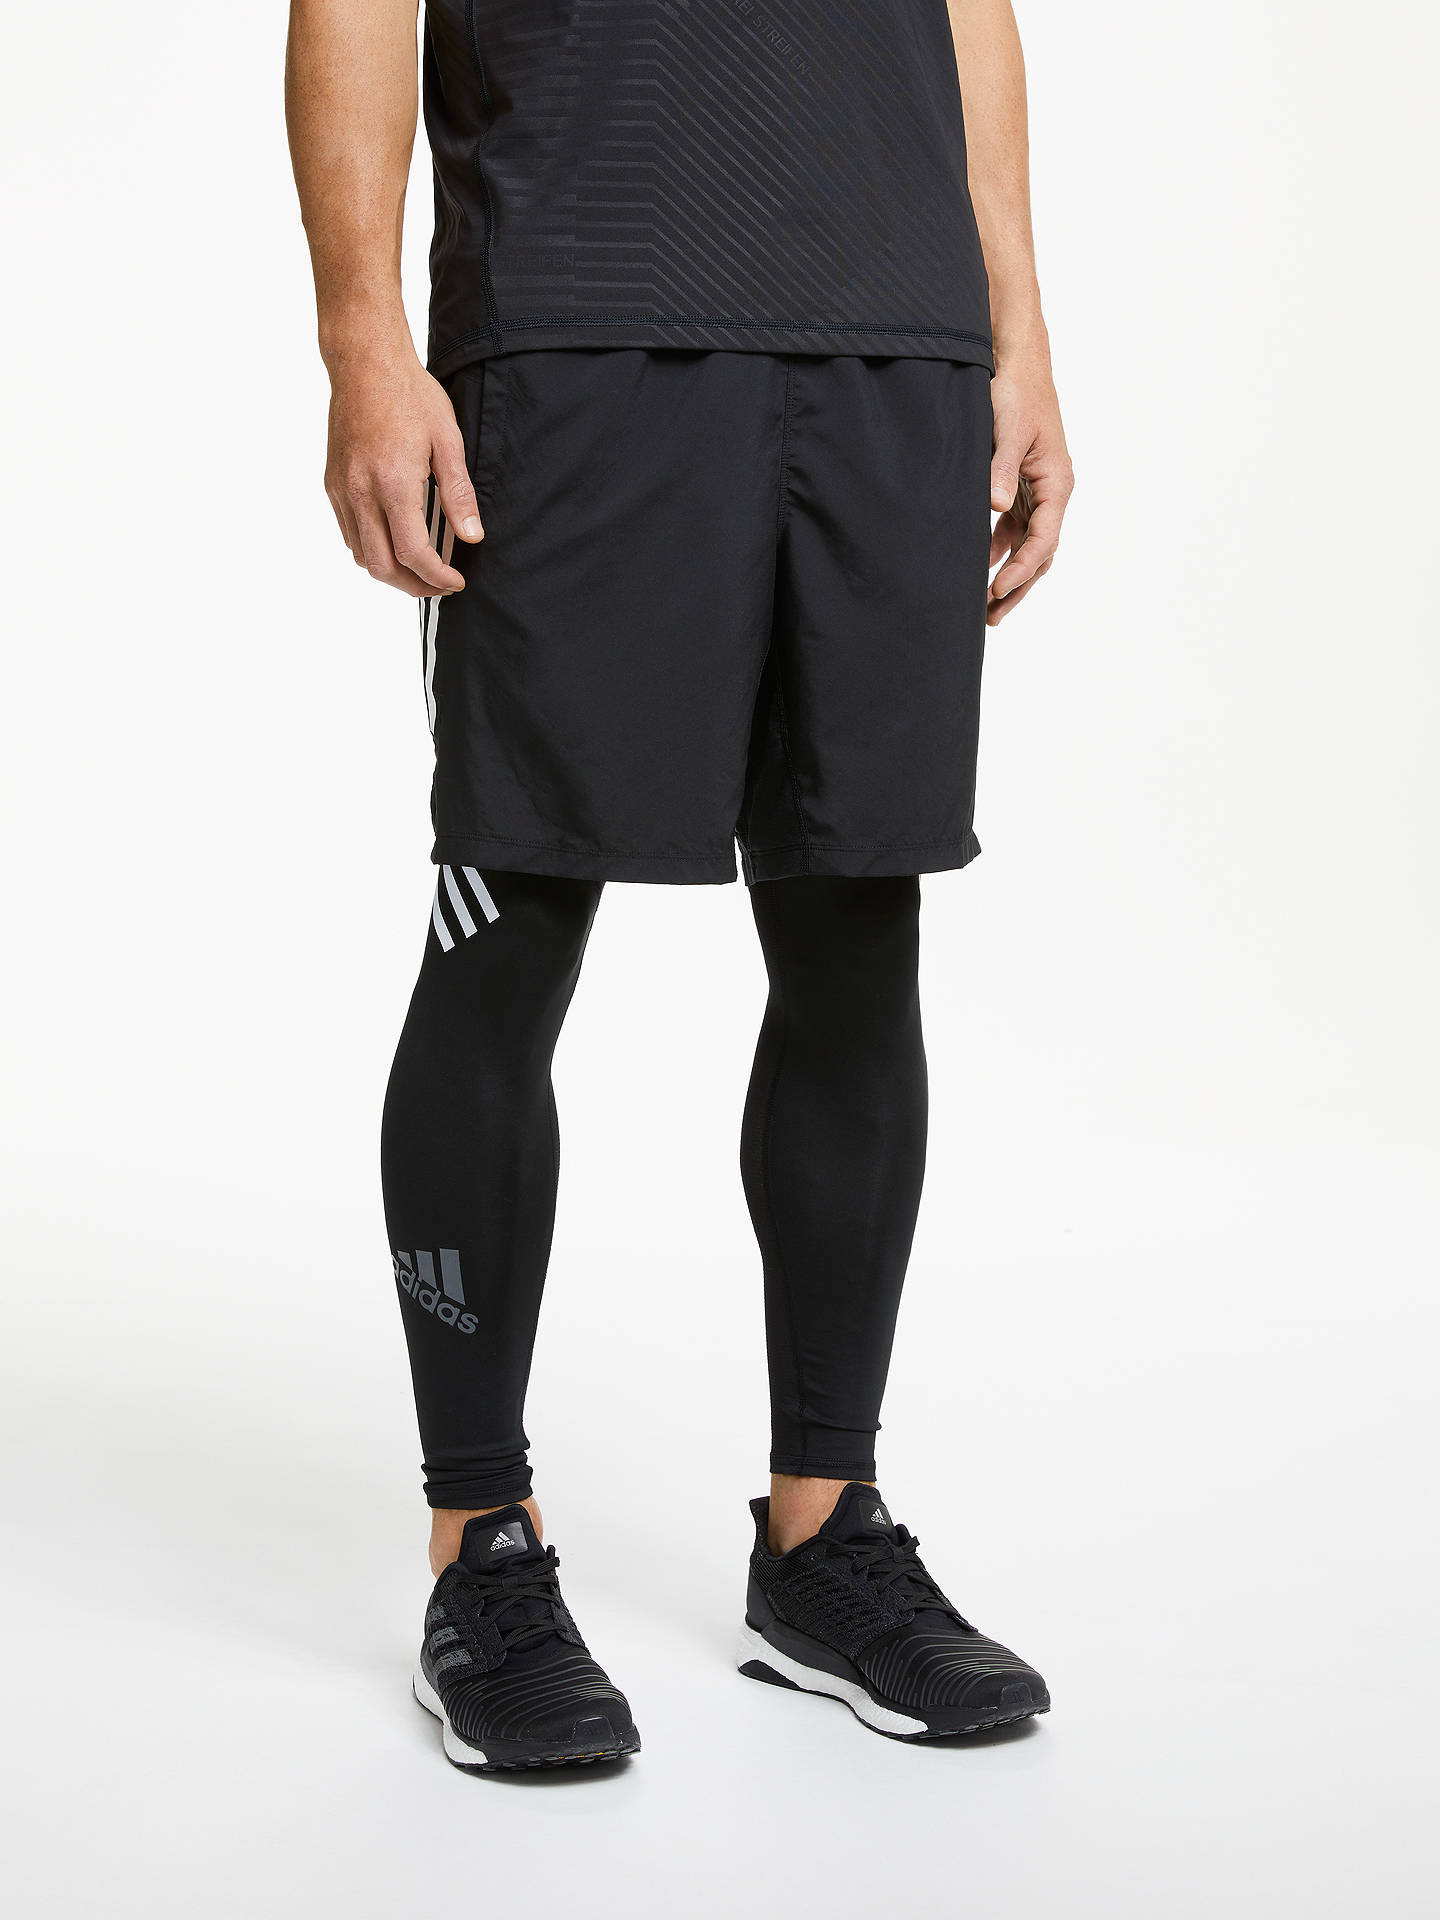 f00b1e3072ebc Buy adidas Alphaskin Sport+ Long 3-Stripes Tights, Black, S Online at  johnlewis ...